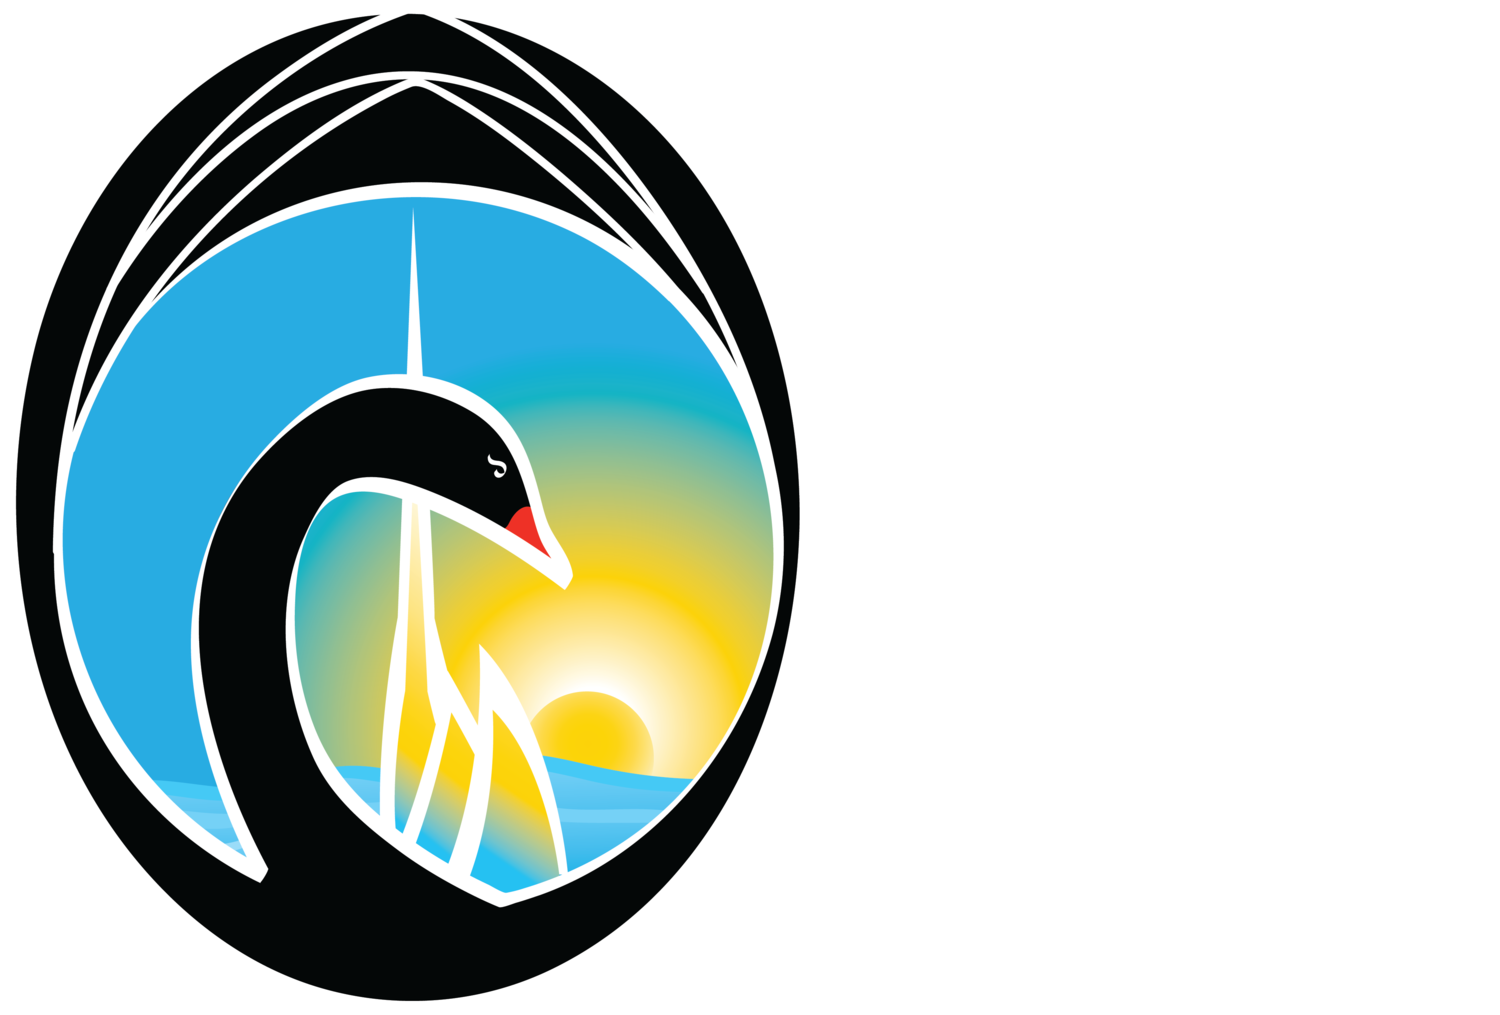 Swan Festival of Lights 2016